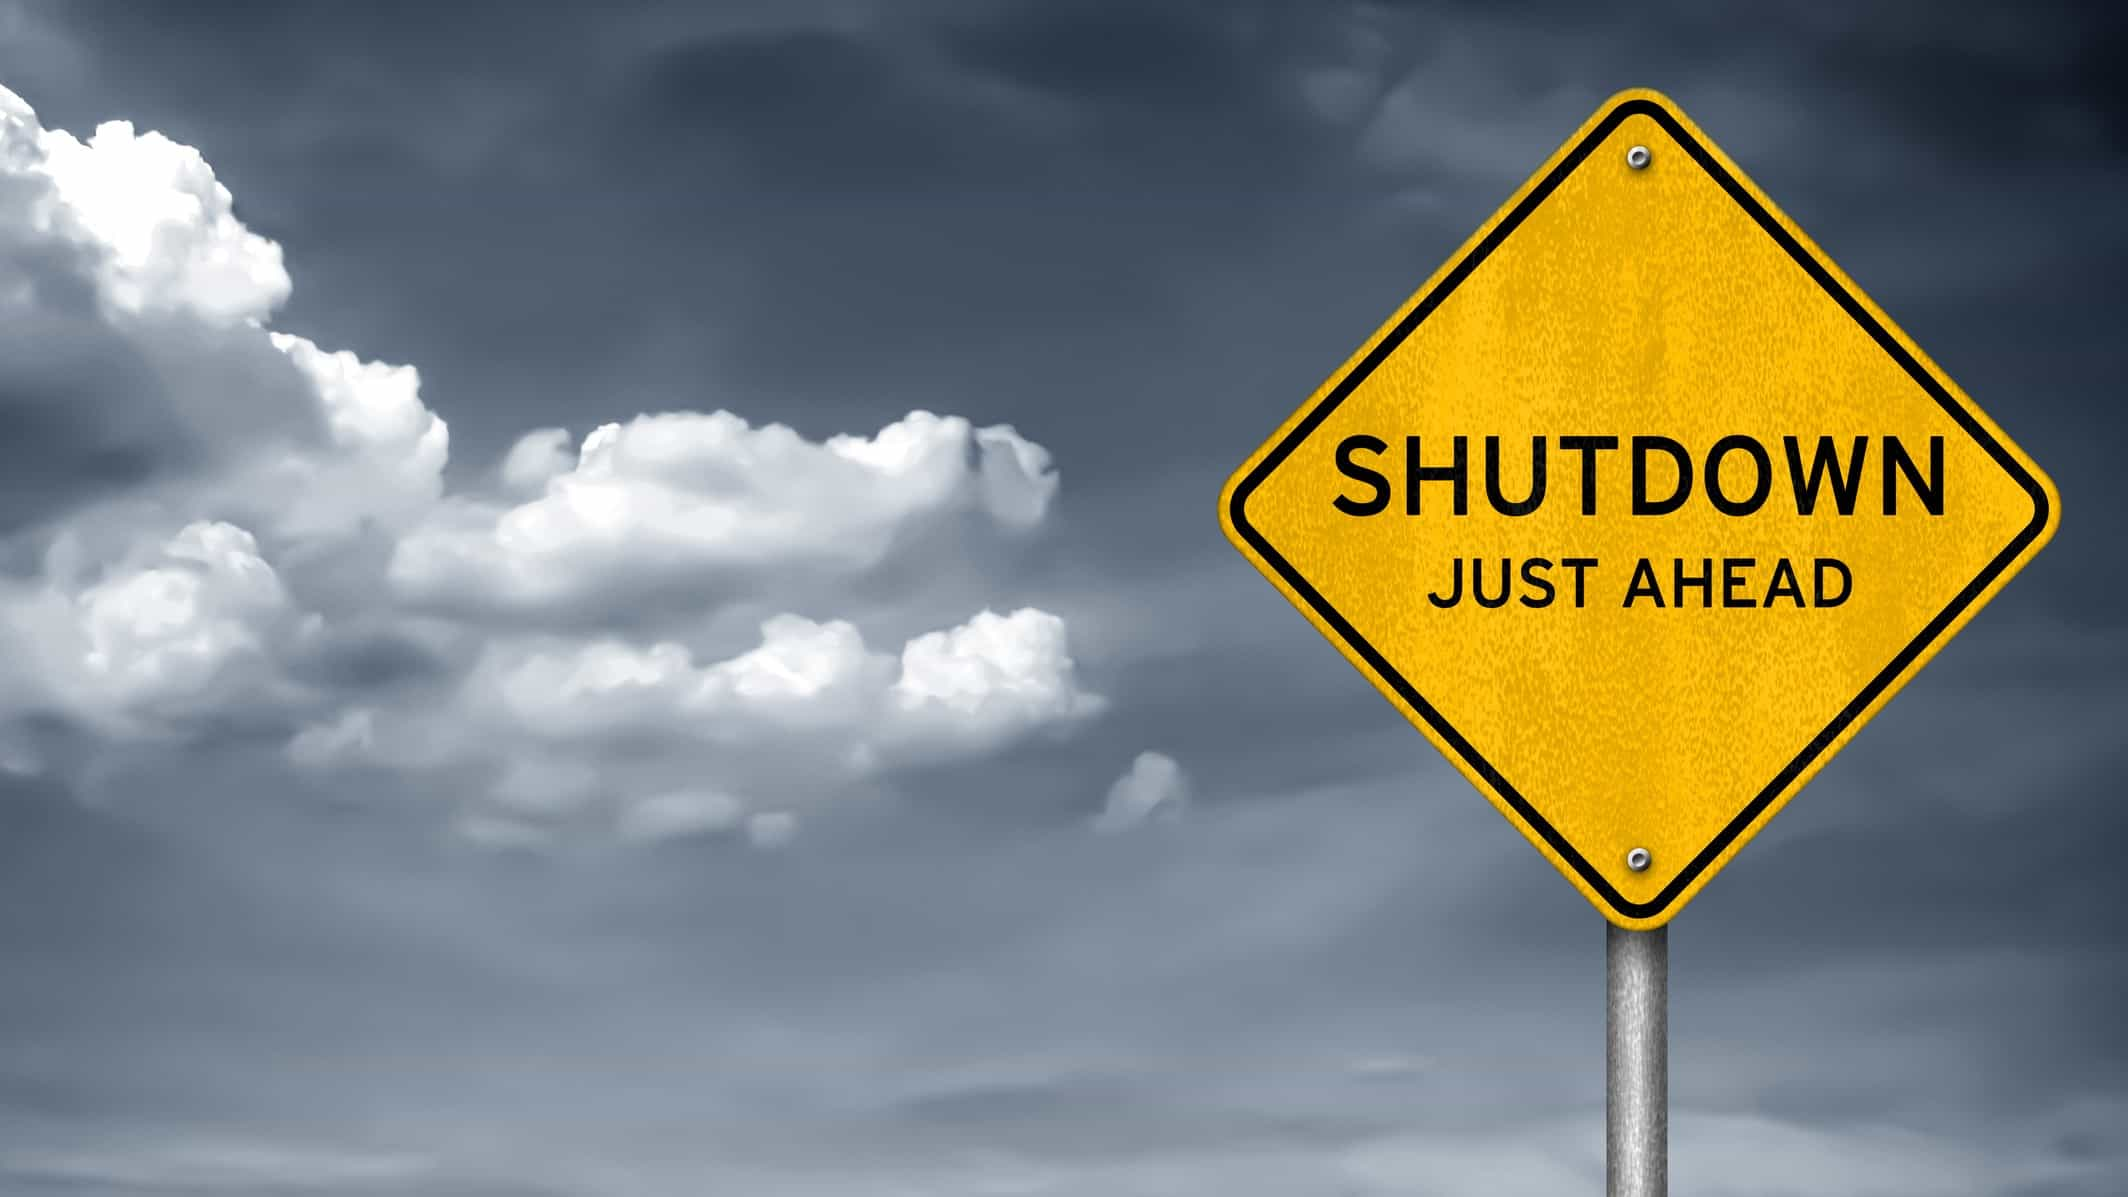 shutdown relating to asx shares and etfs represented by road sign stating shutdown ahead